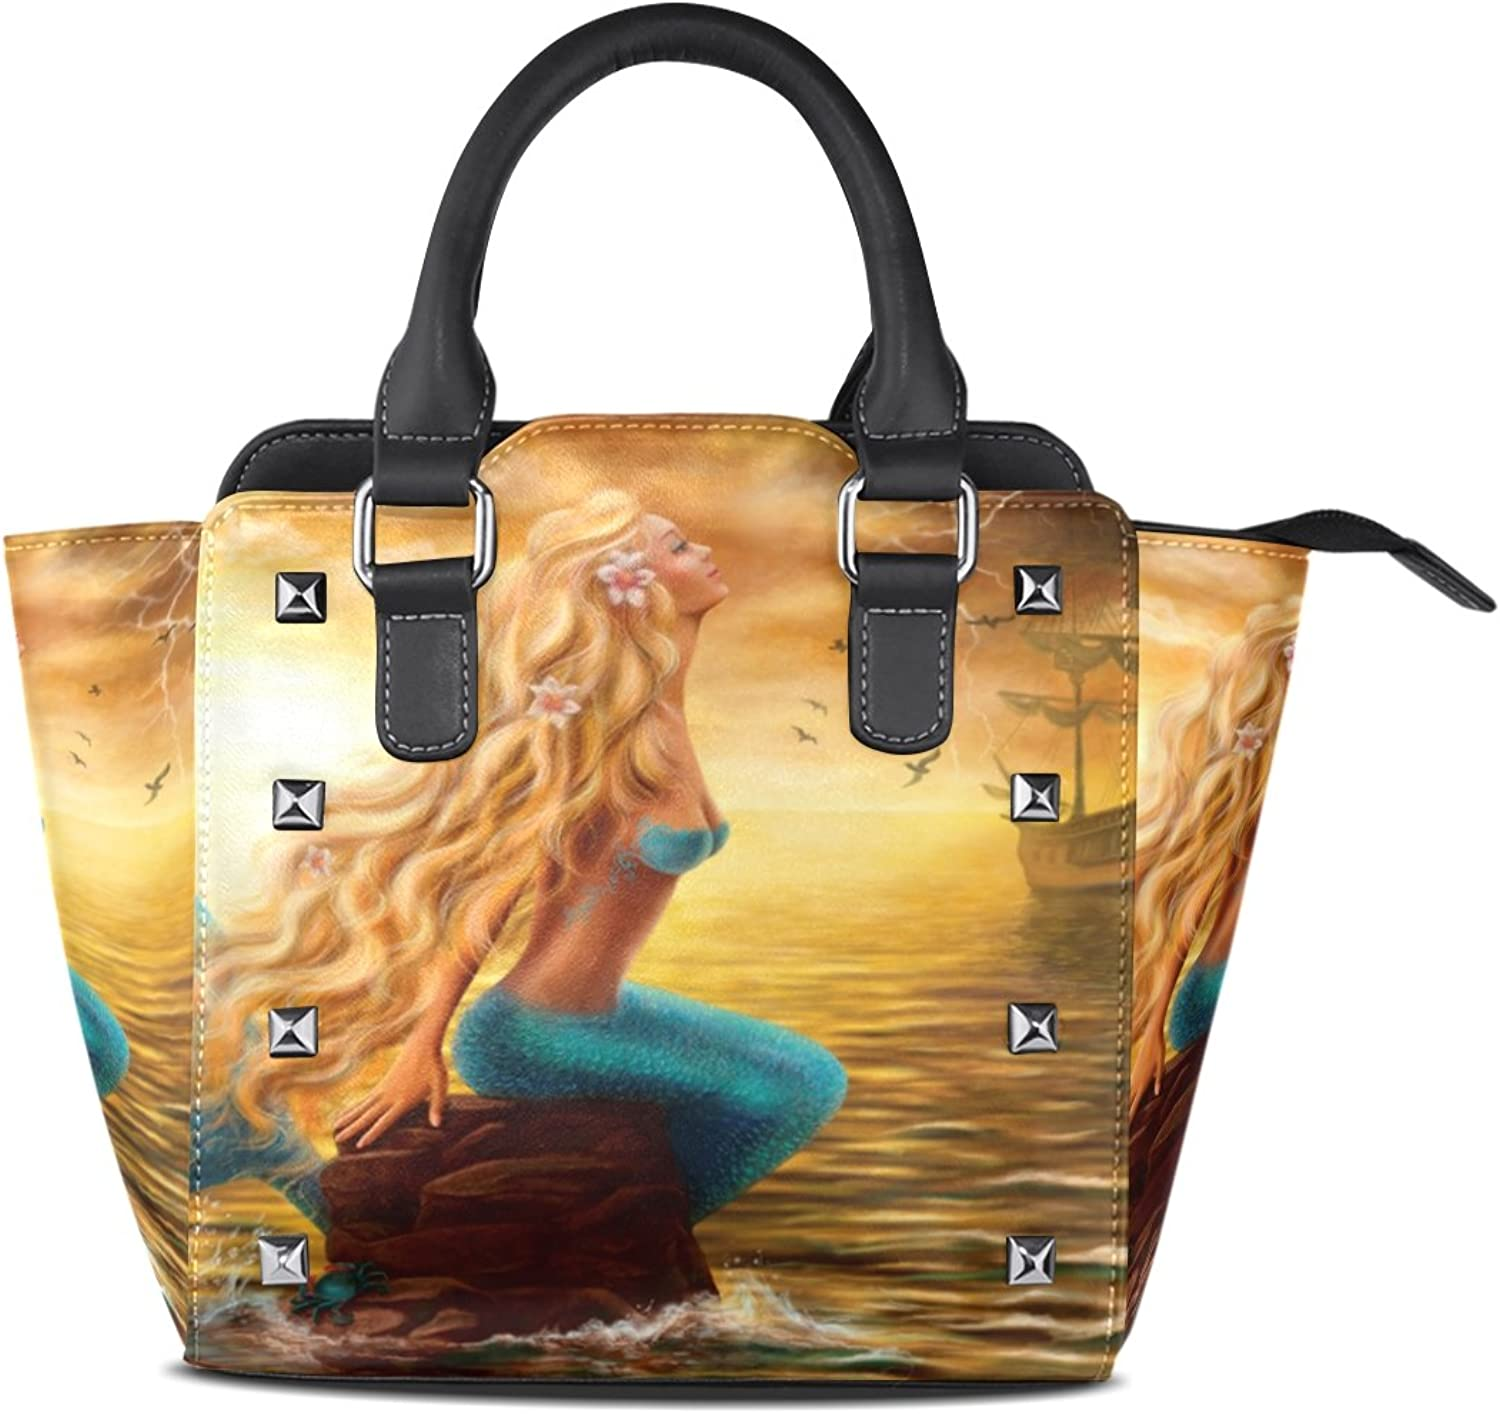 Sunlome Sea Mermaid with Ghost Ship at Sunset Print Handbags Women's PU Leather Top-Handle Shoulder Bags